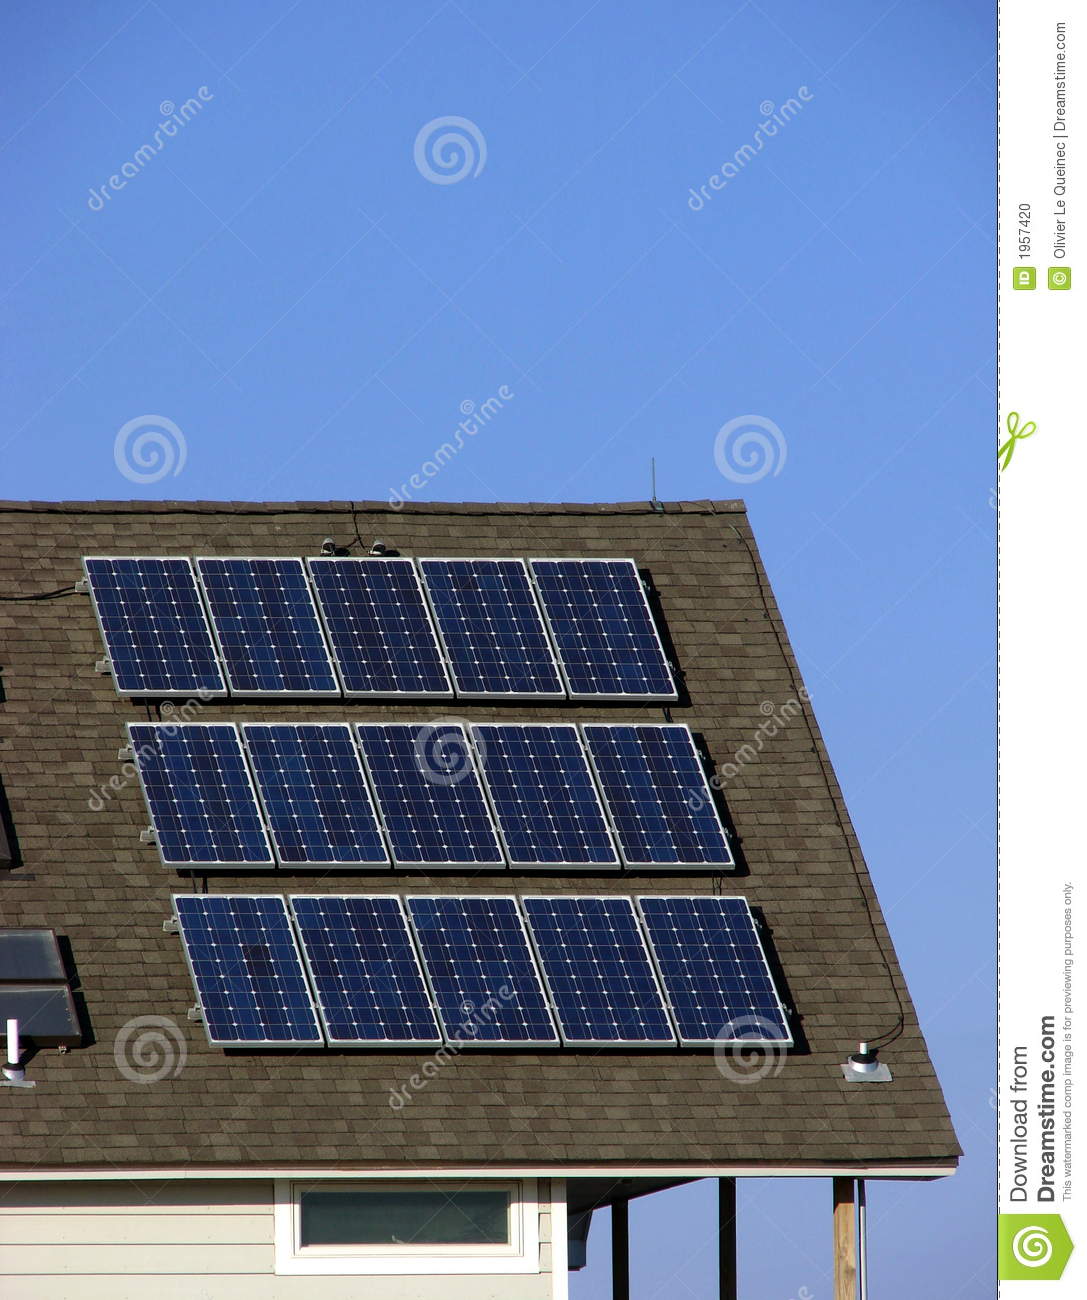 Solar Panel Yearly Savings: Green Energy Saving Solar Panels On Building Roof Stock